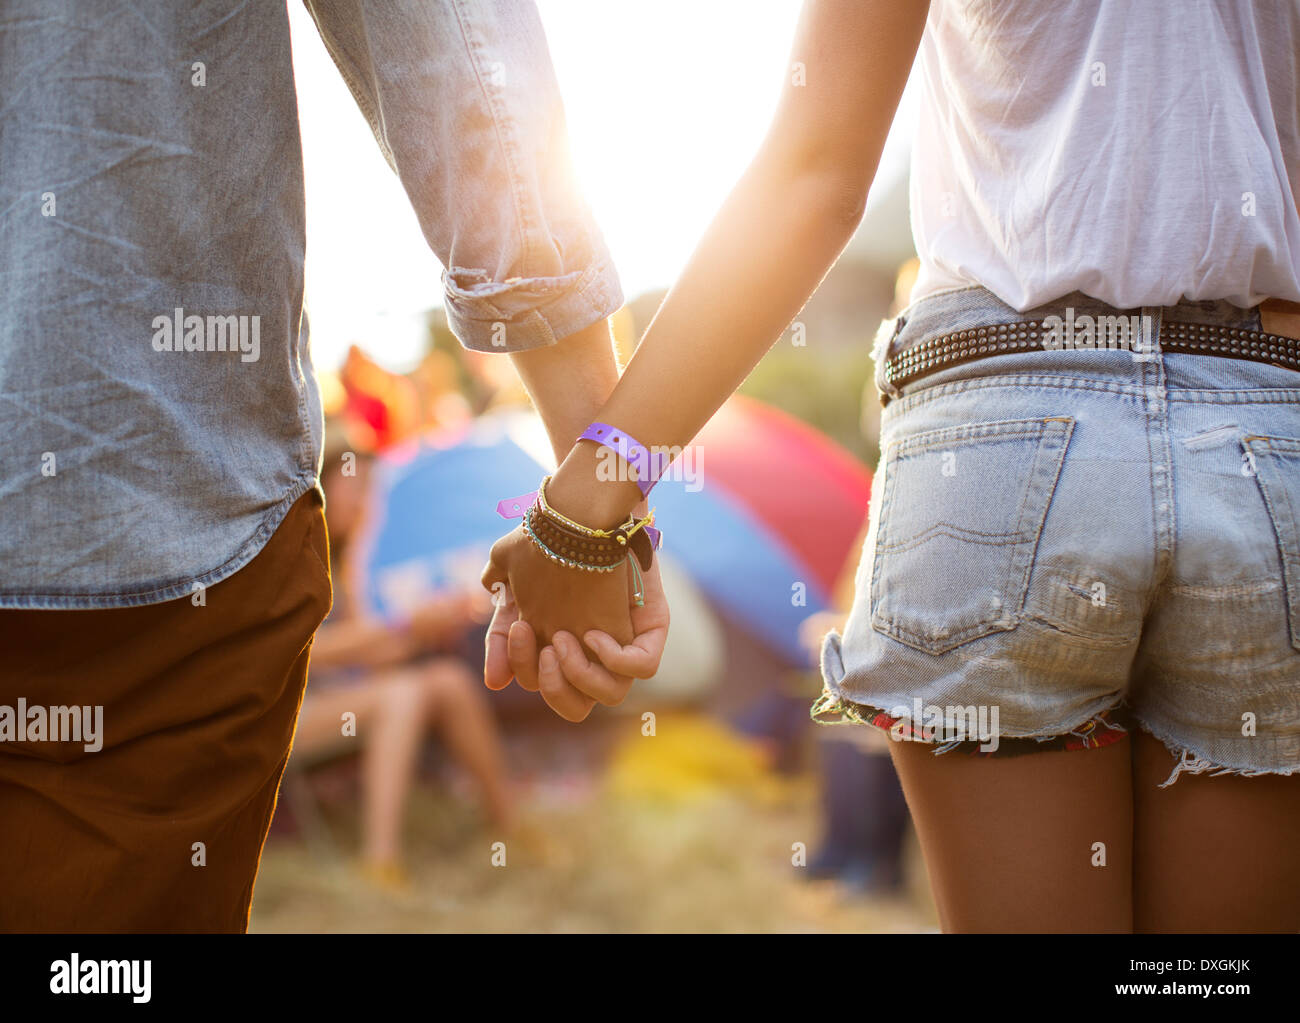 Couple holding hands near tents at music festival - Stock Image